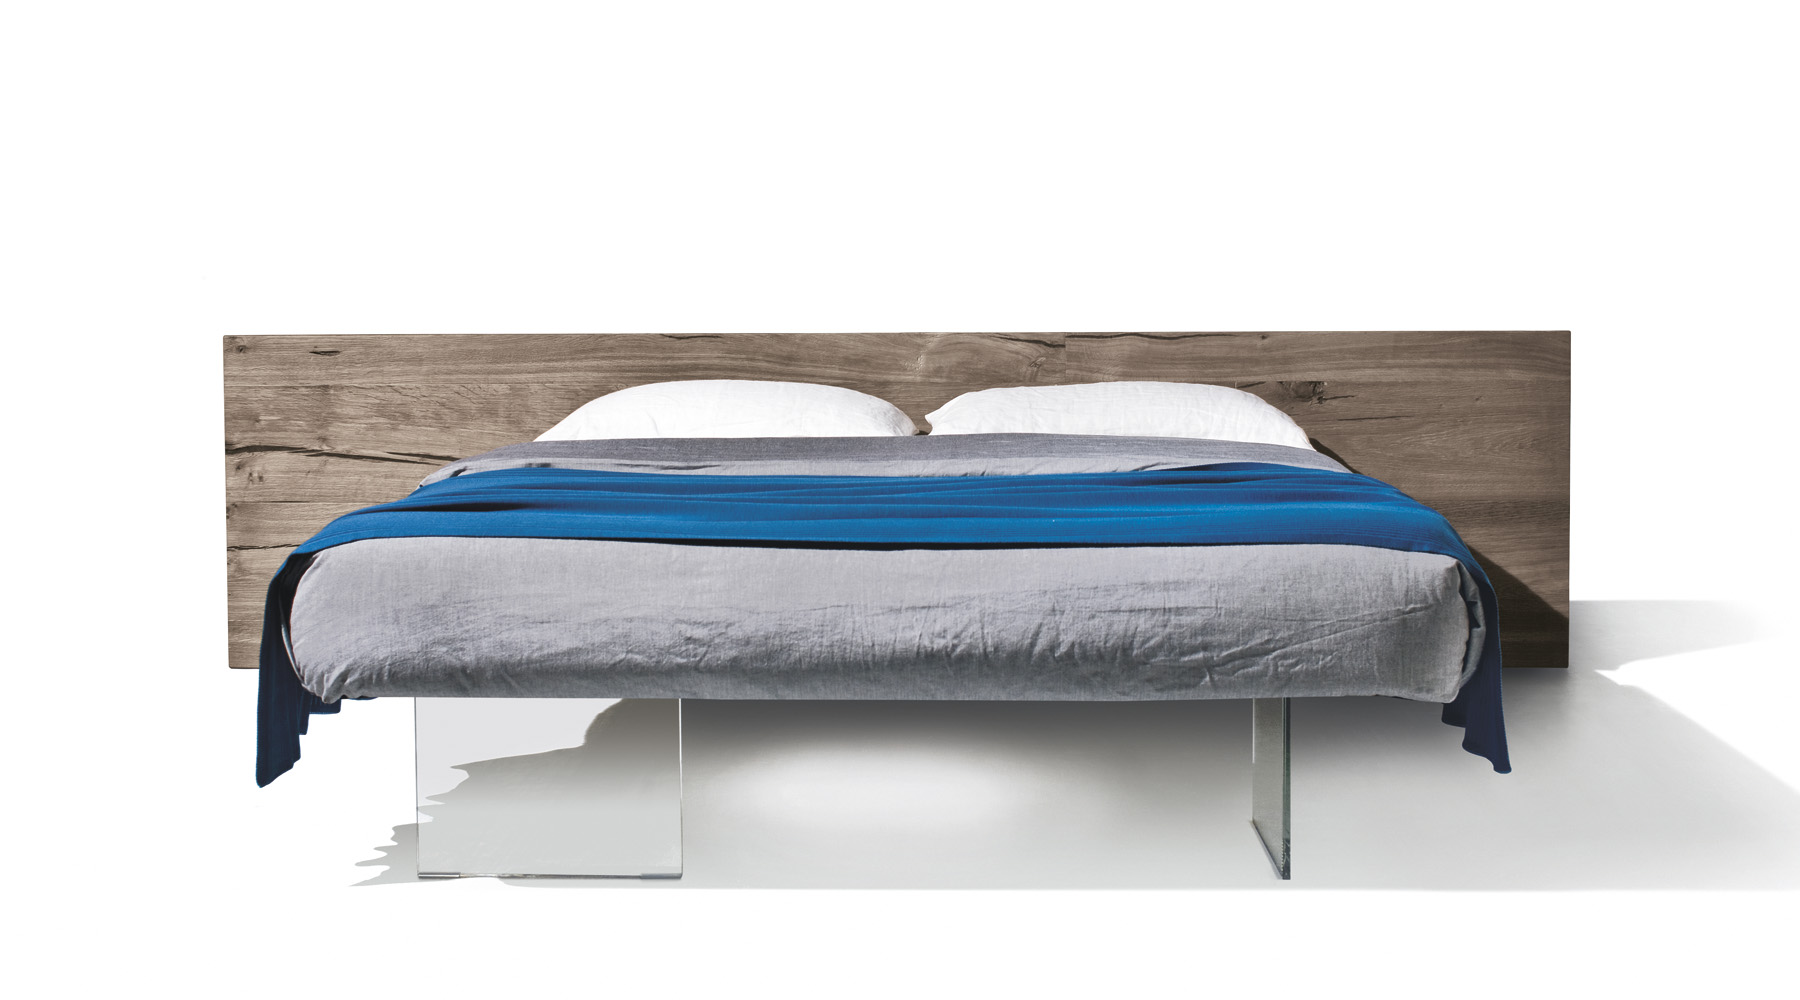 Delfanti arredamenti air wildwood for Letto air lago outlet